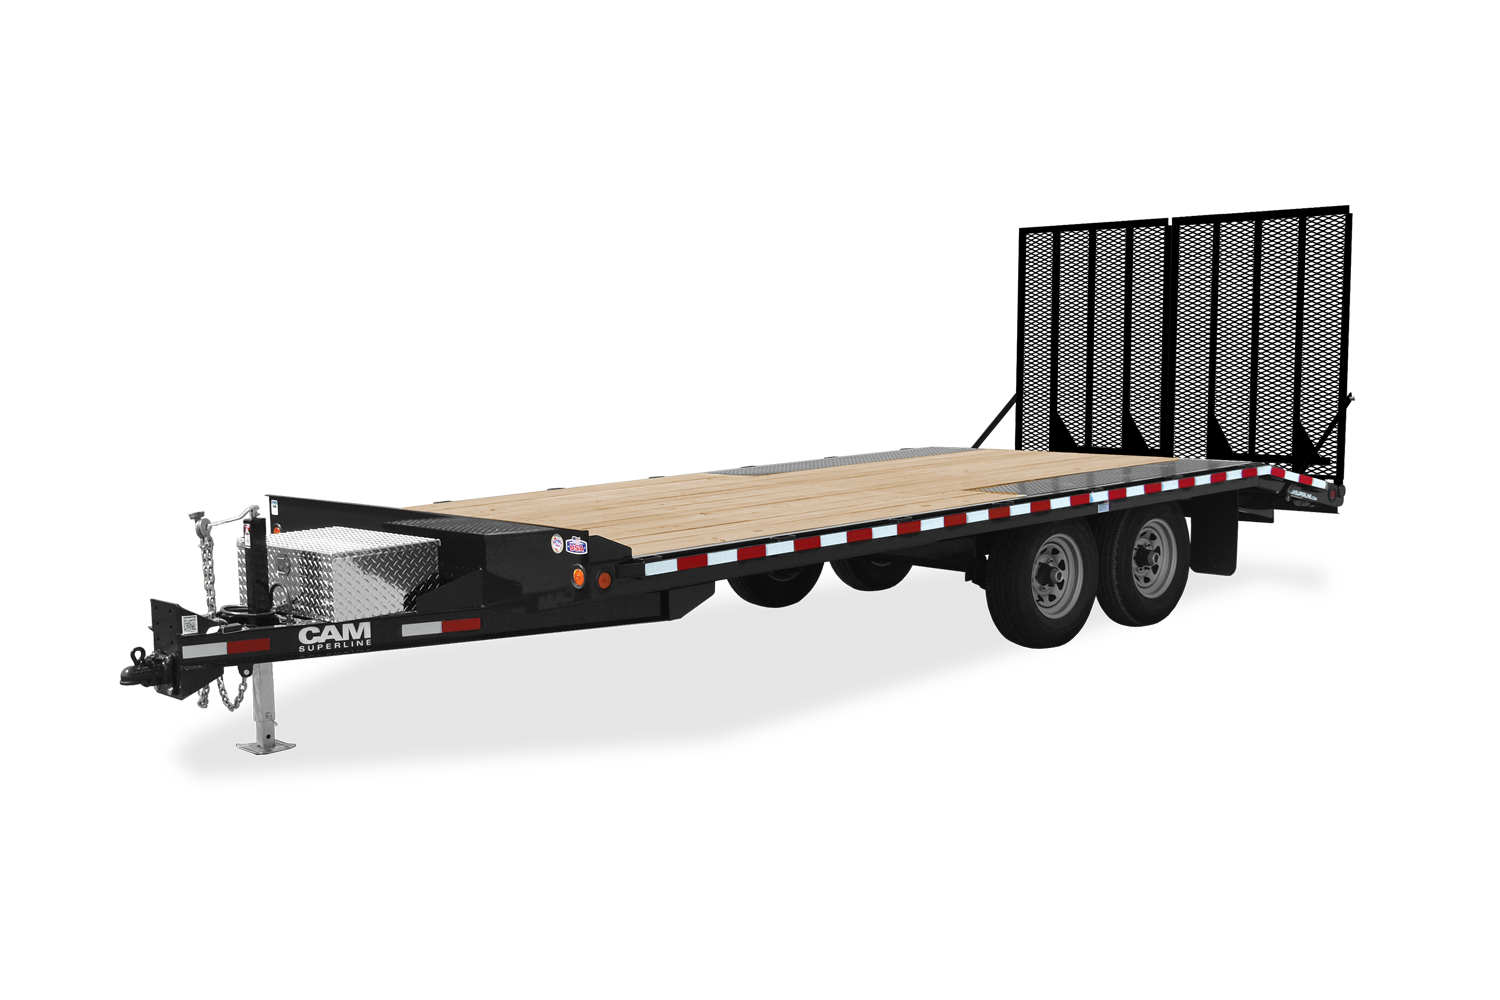 2021 Cam Superline 5 Ton General Duty Deckover Trailer 8.5